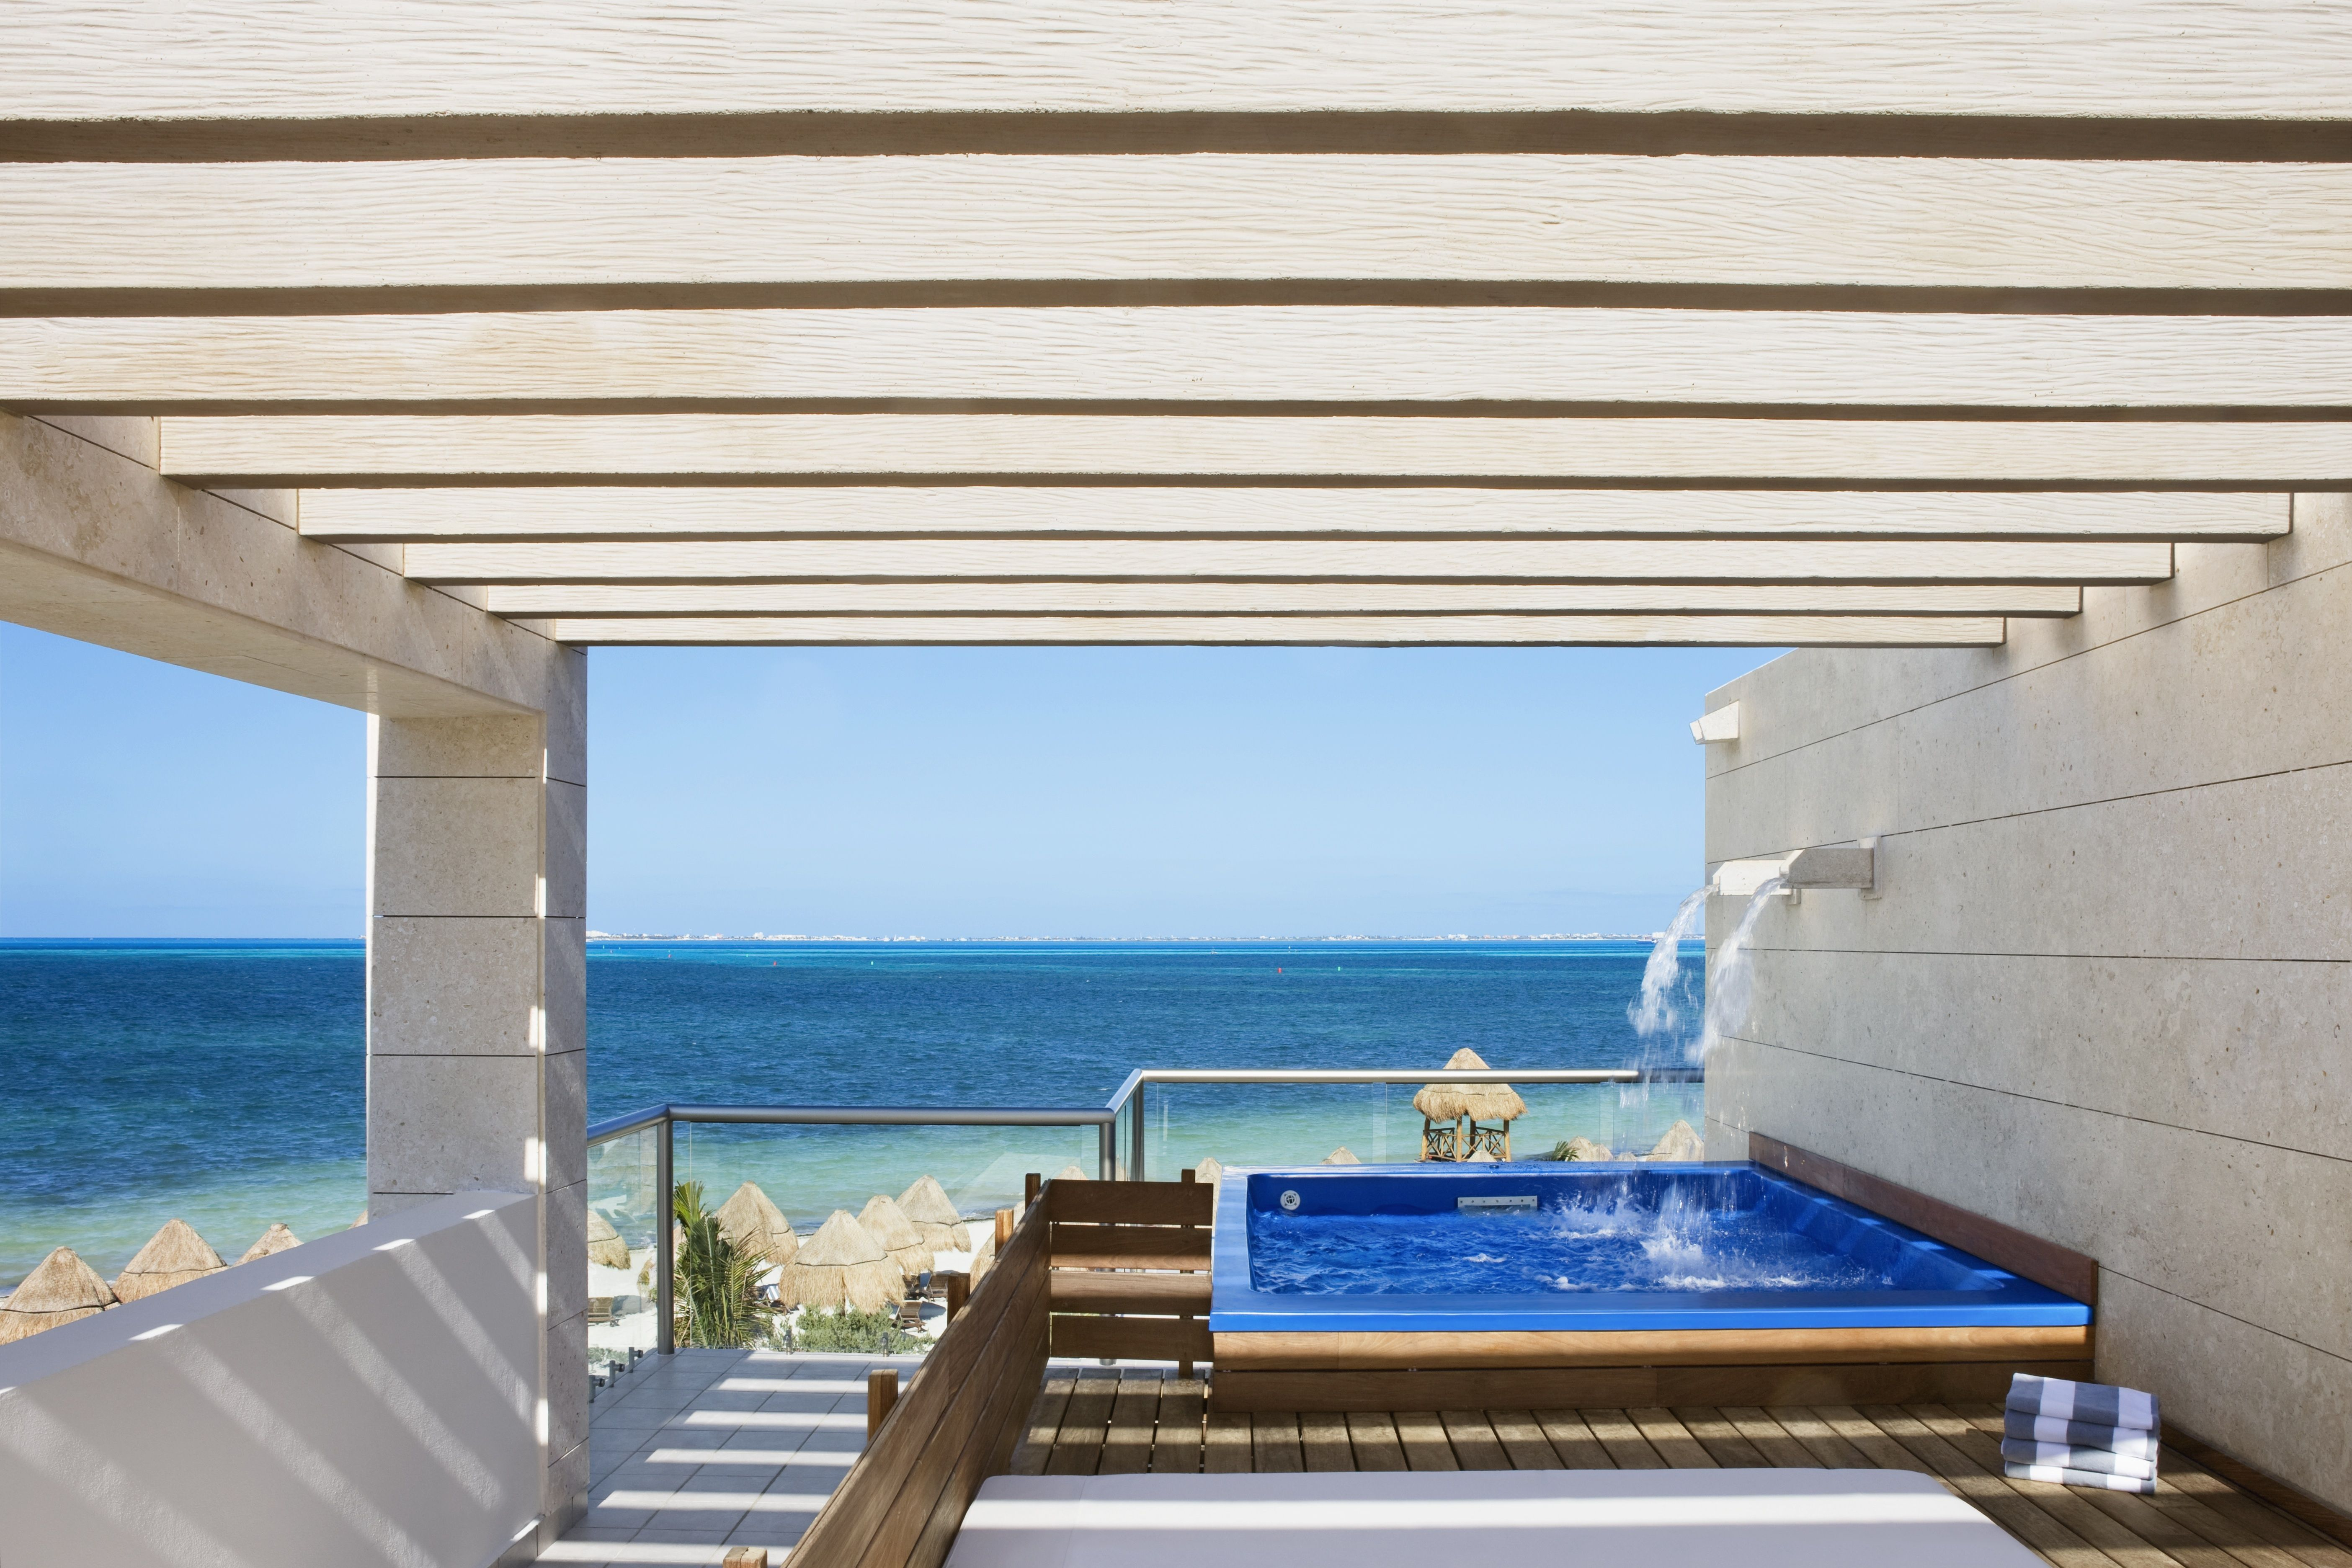 Cheapcaribbean The Beloved Hotel Beachfront Casita Suite With Plunge Pool Luxurious Two Story Beachfront Cas Mexico Resorts Caribbean Getaways Cheap Caribbean